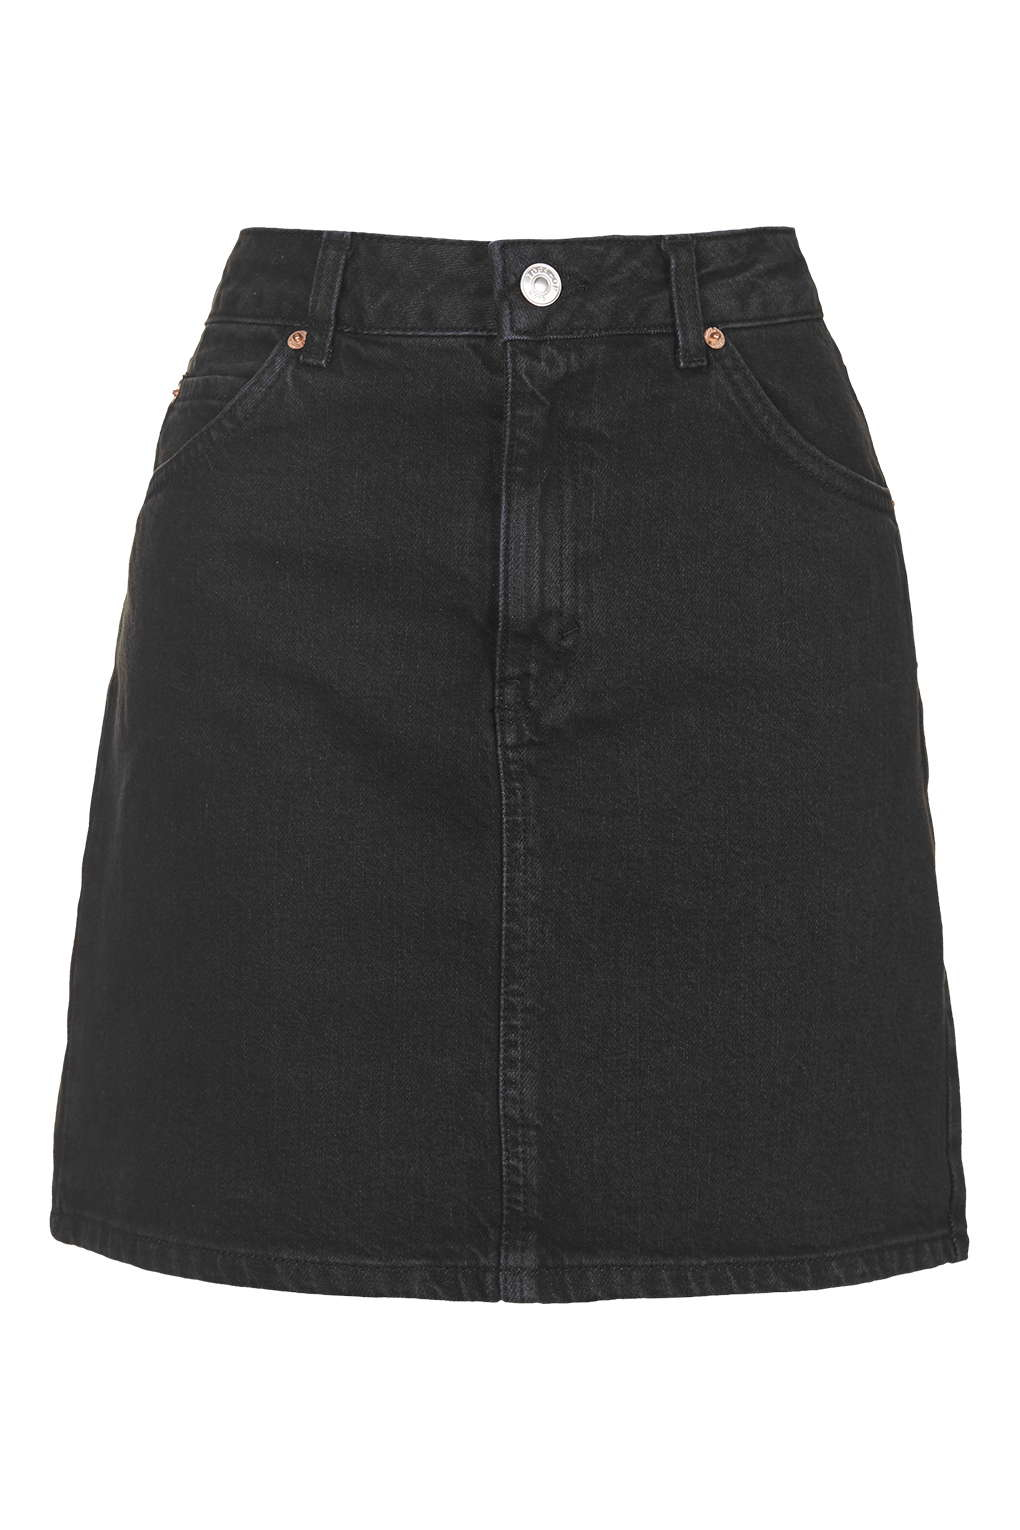 664c0ea5ac TOPSHOP Petite Moto High Waist Denim Skirt in Black - Lyst